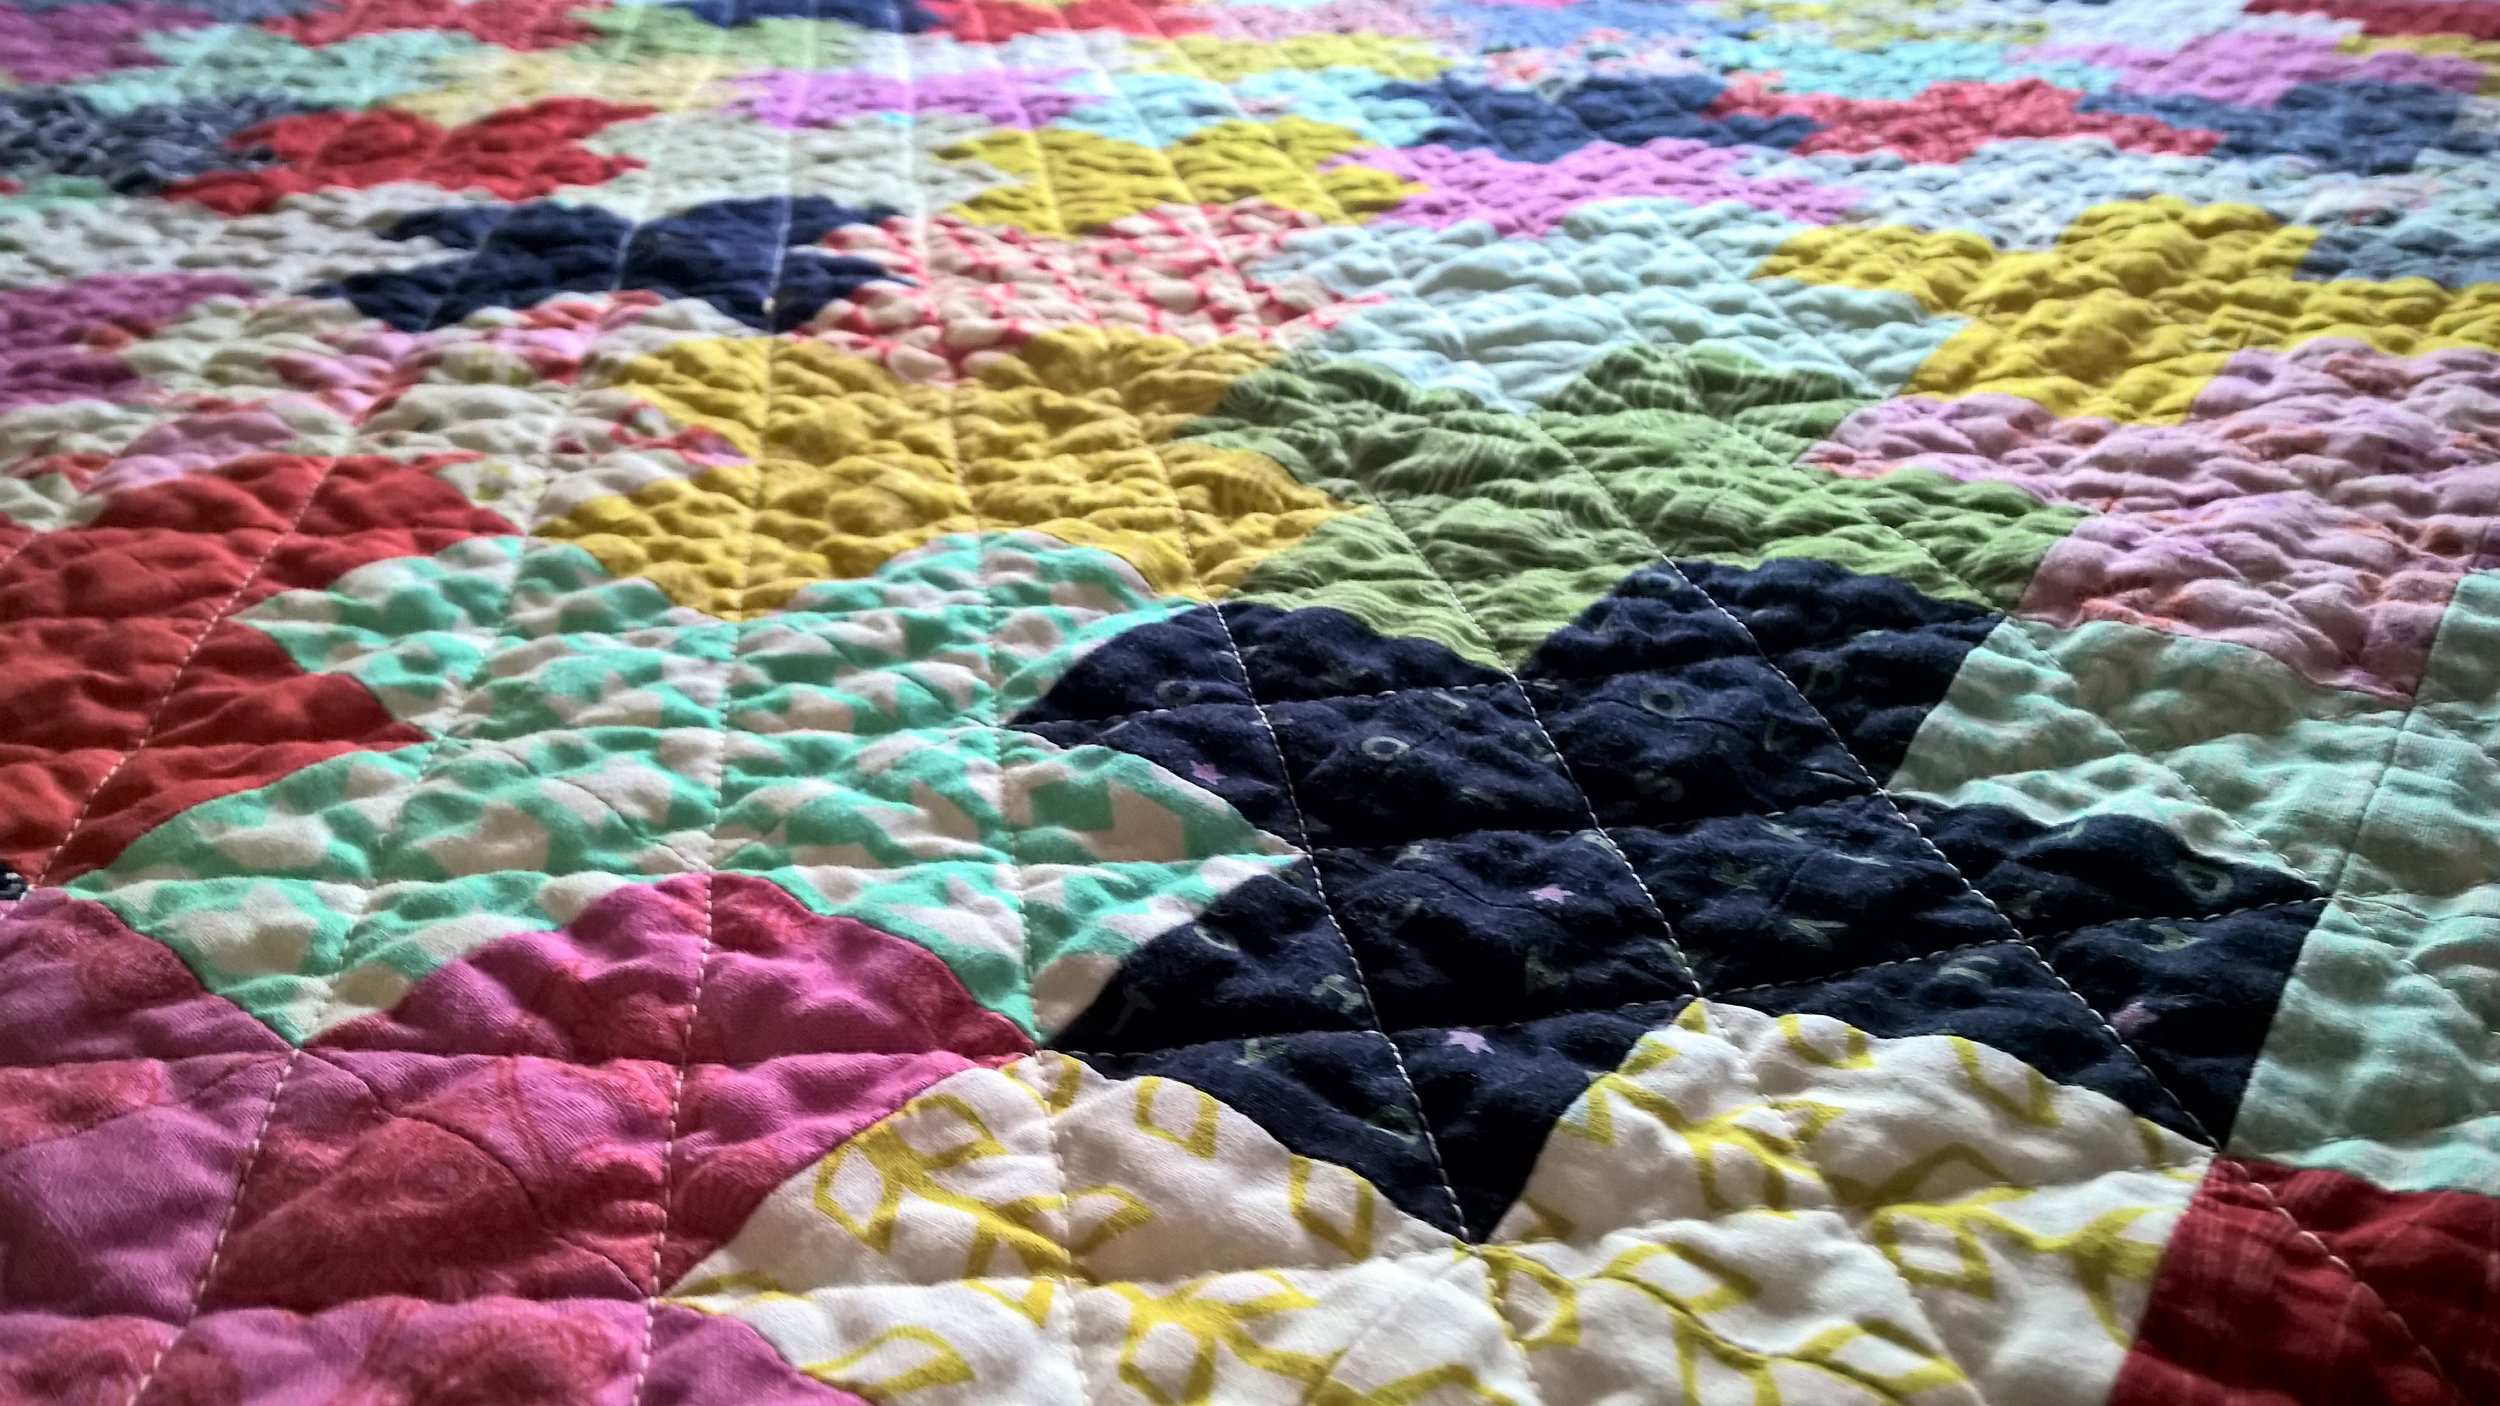 Coon baby quilting.jpg